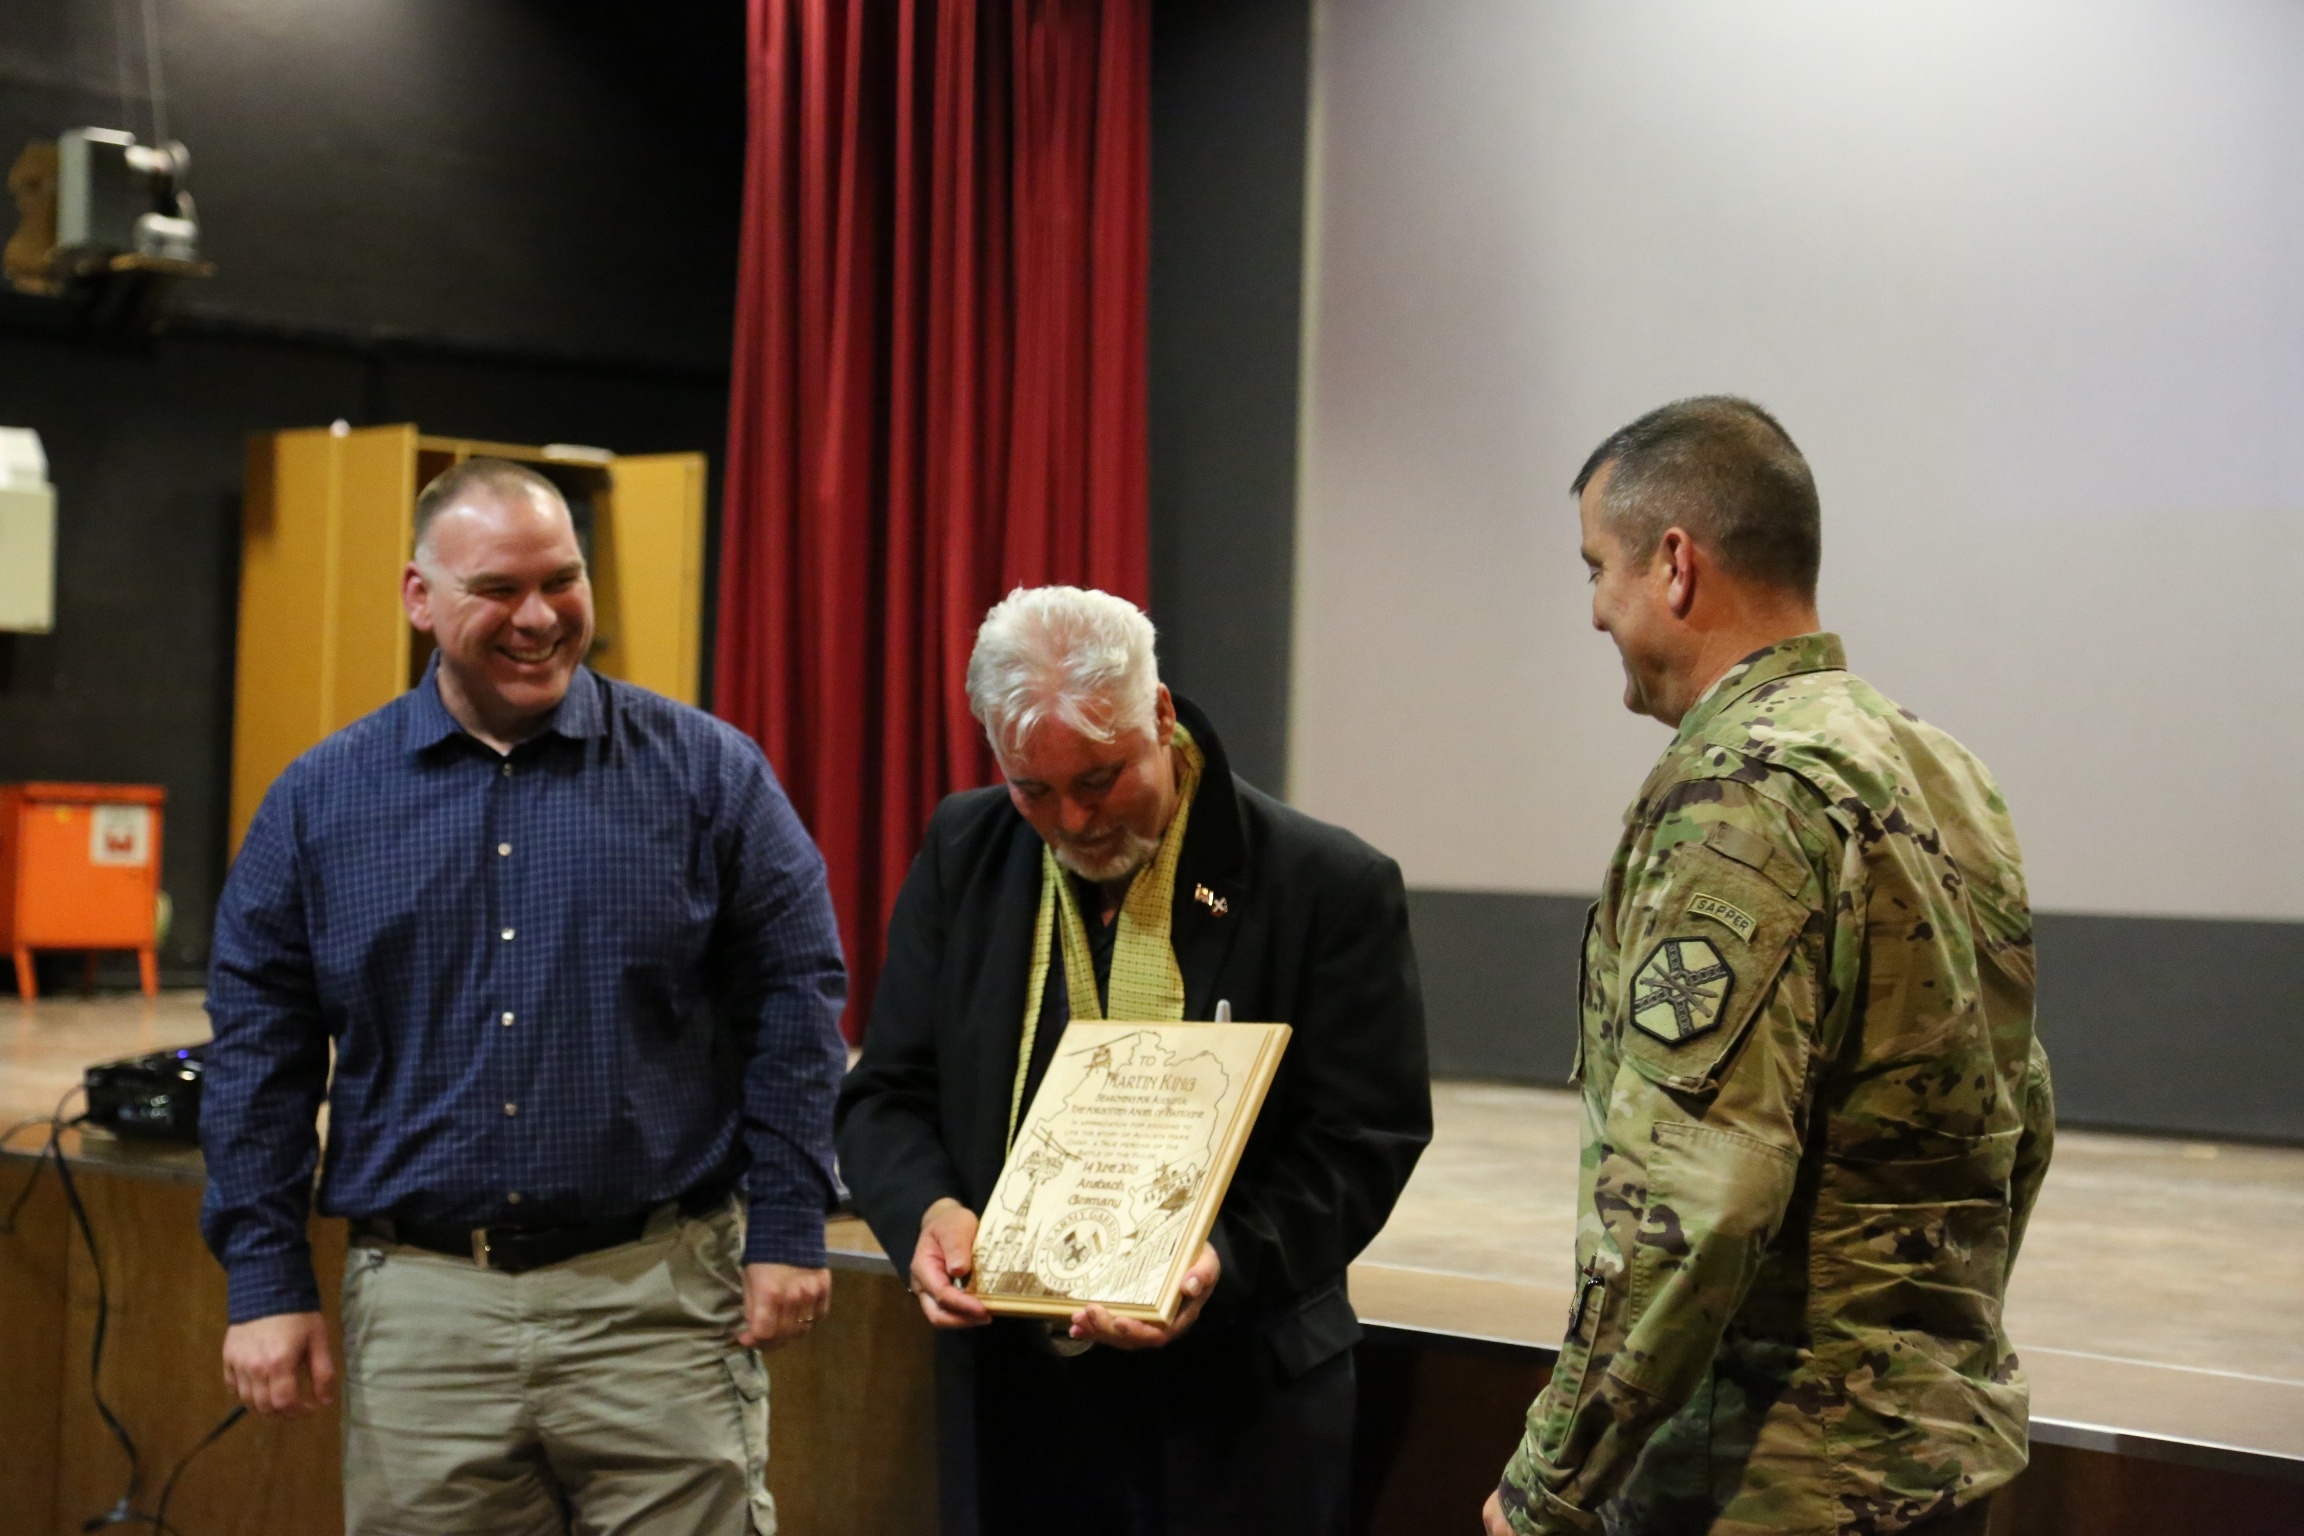 Historian and documentary film producer Martin King, center, receives a plaque from Chris Buchanan, left, Directorate of Plans, Training, Mobilization and Security, and from Col. Christopher M. Benson, right, U.S. Army Garrison Ansbach, following a screening of his film Searching for Augusta: The Forgotten Angel of Bastogne.